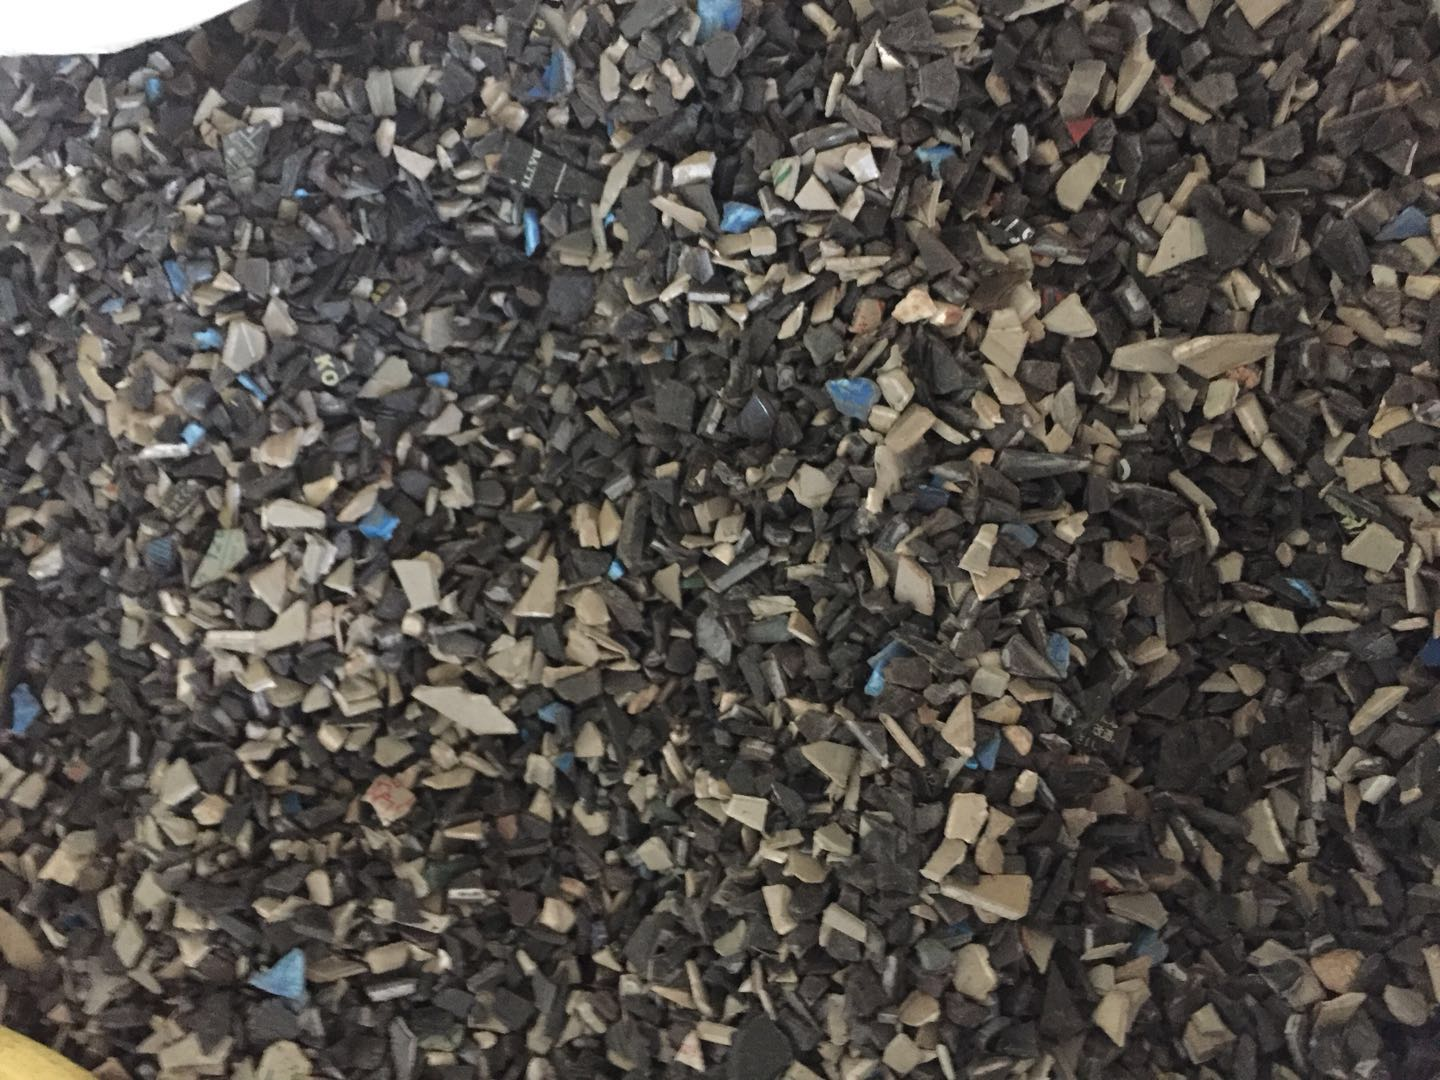 All kinds of High-Quality Plastic Scrap Available for Sale